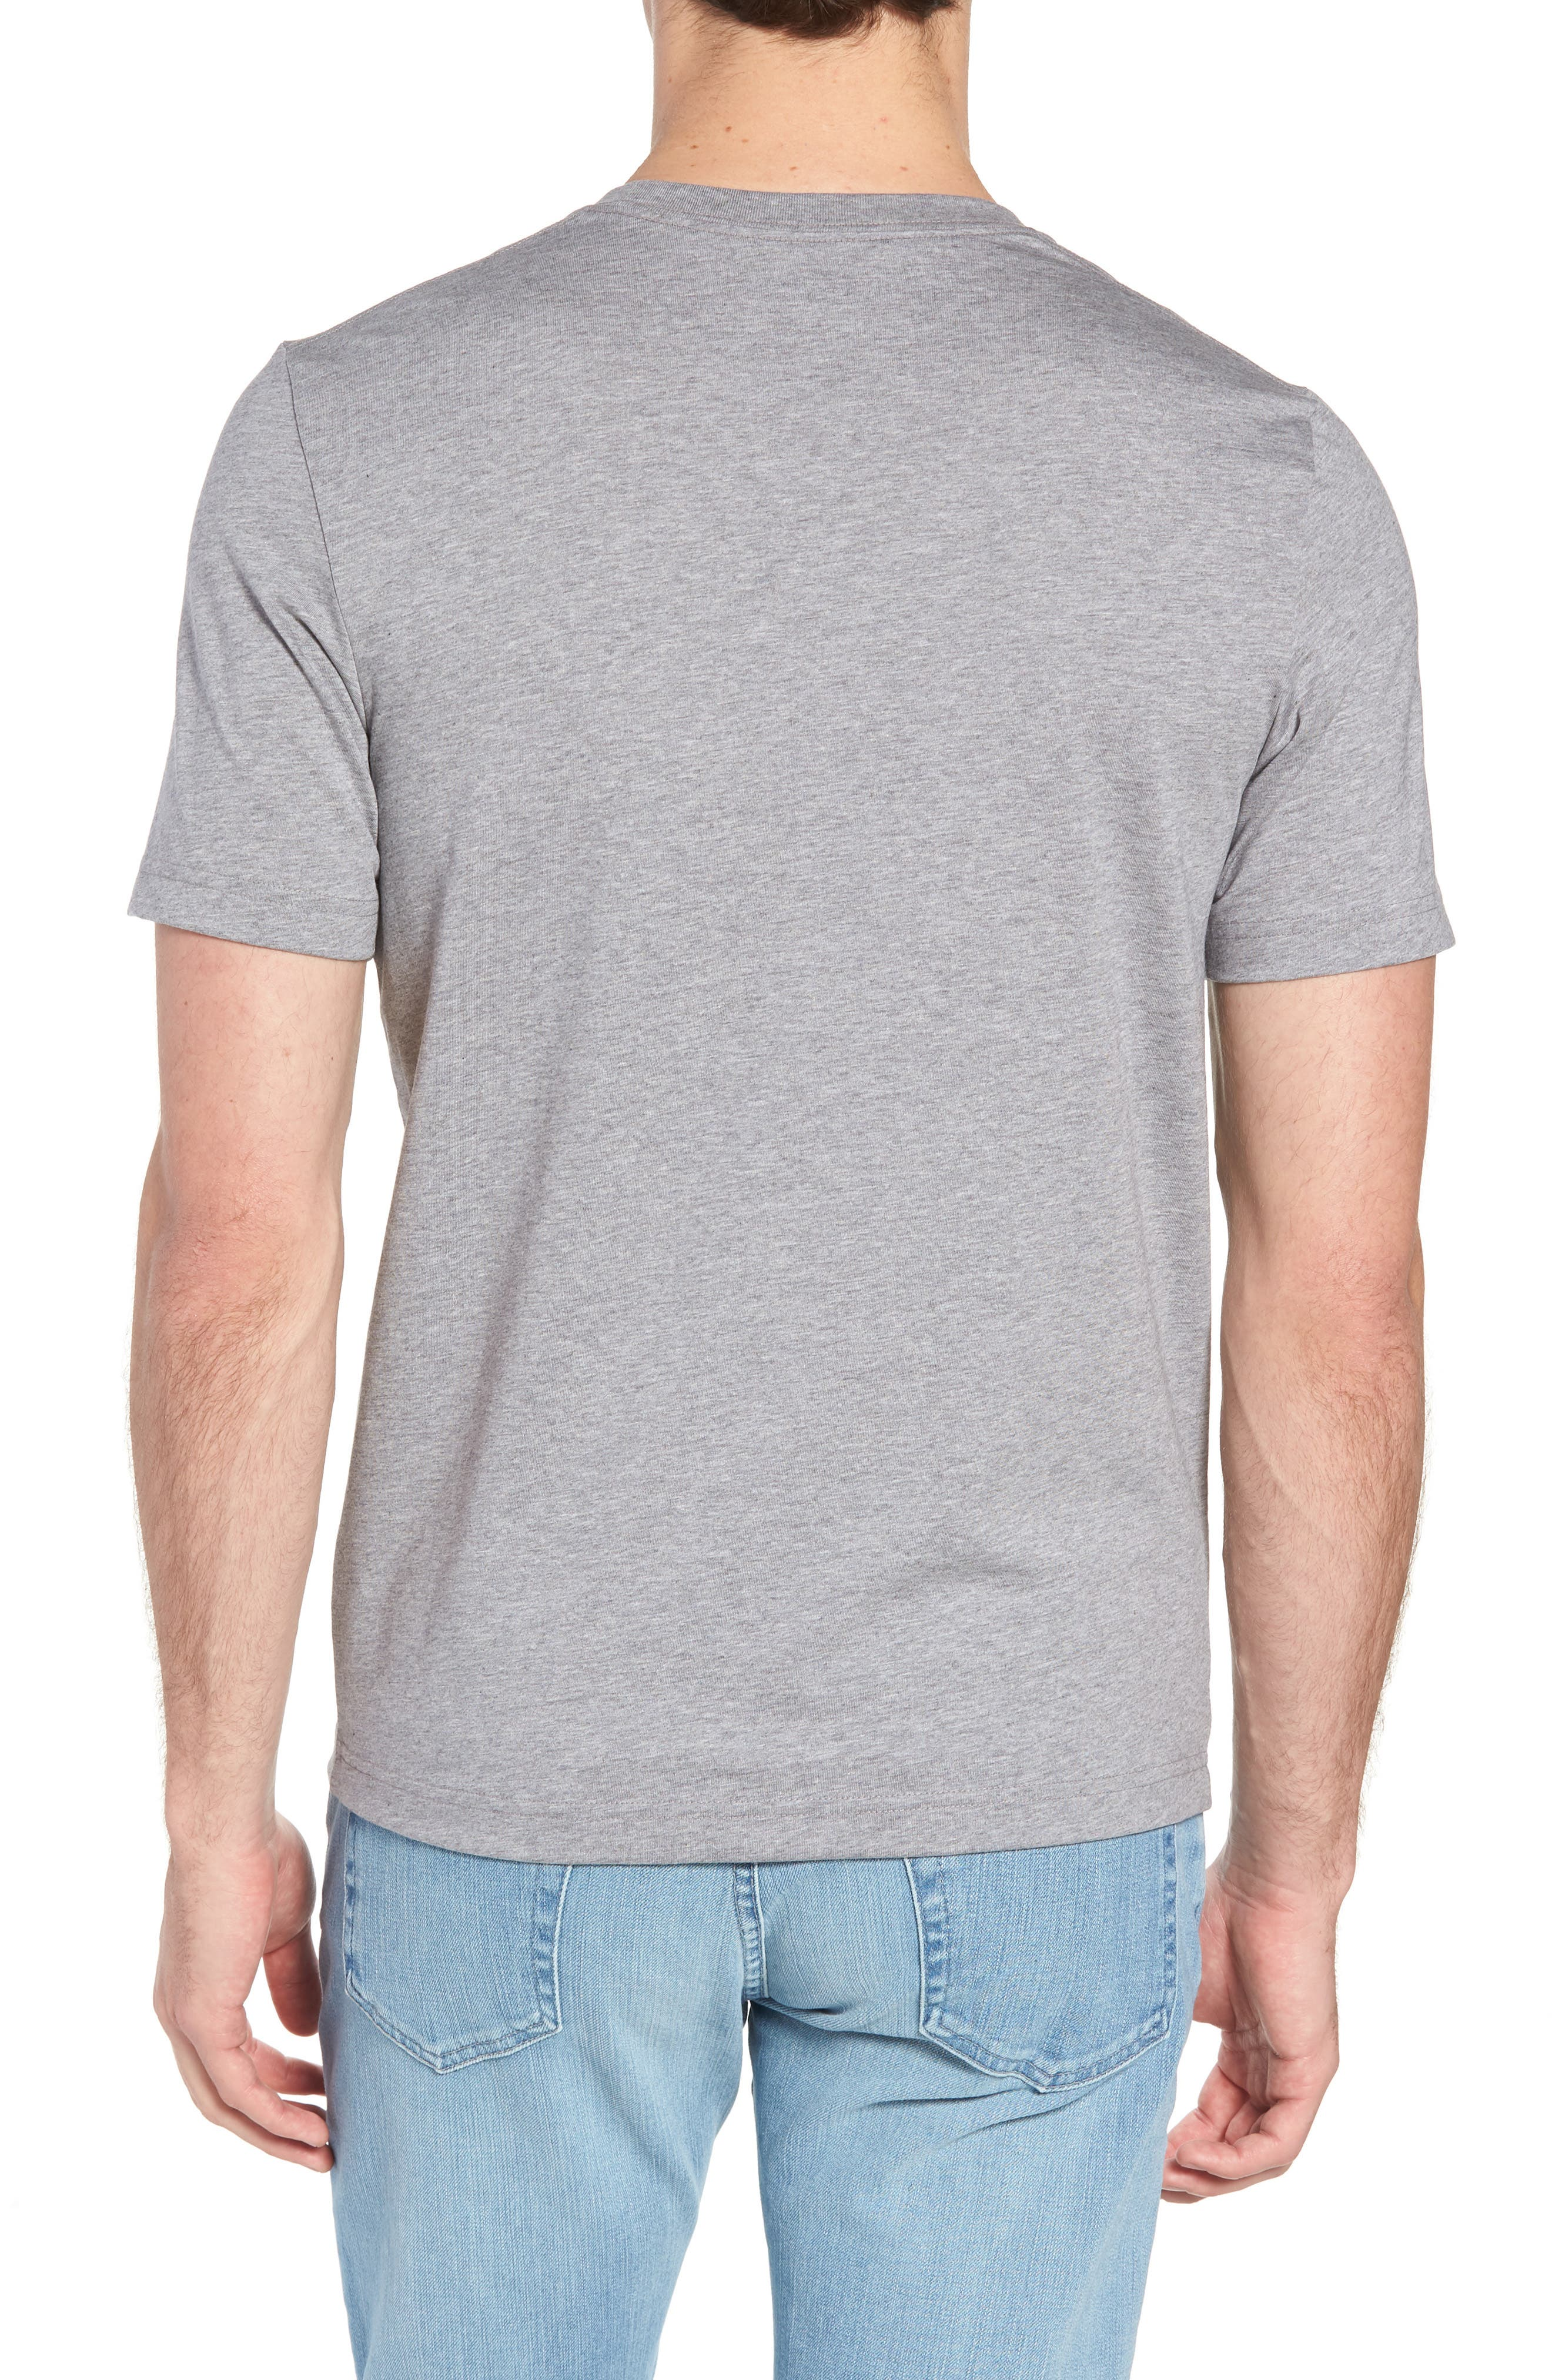 Caddy Day Graphic T-Shirt,                             Alternate thumbnail 2, color,                             Heather Grey